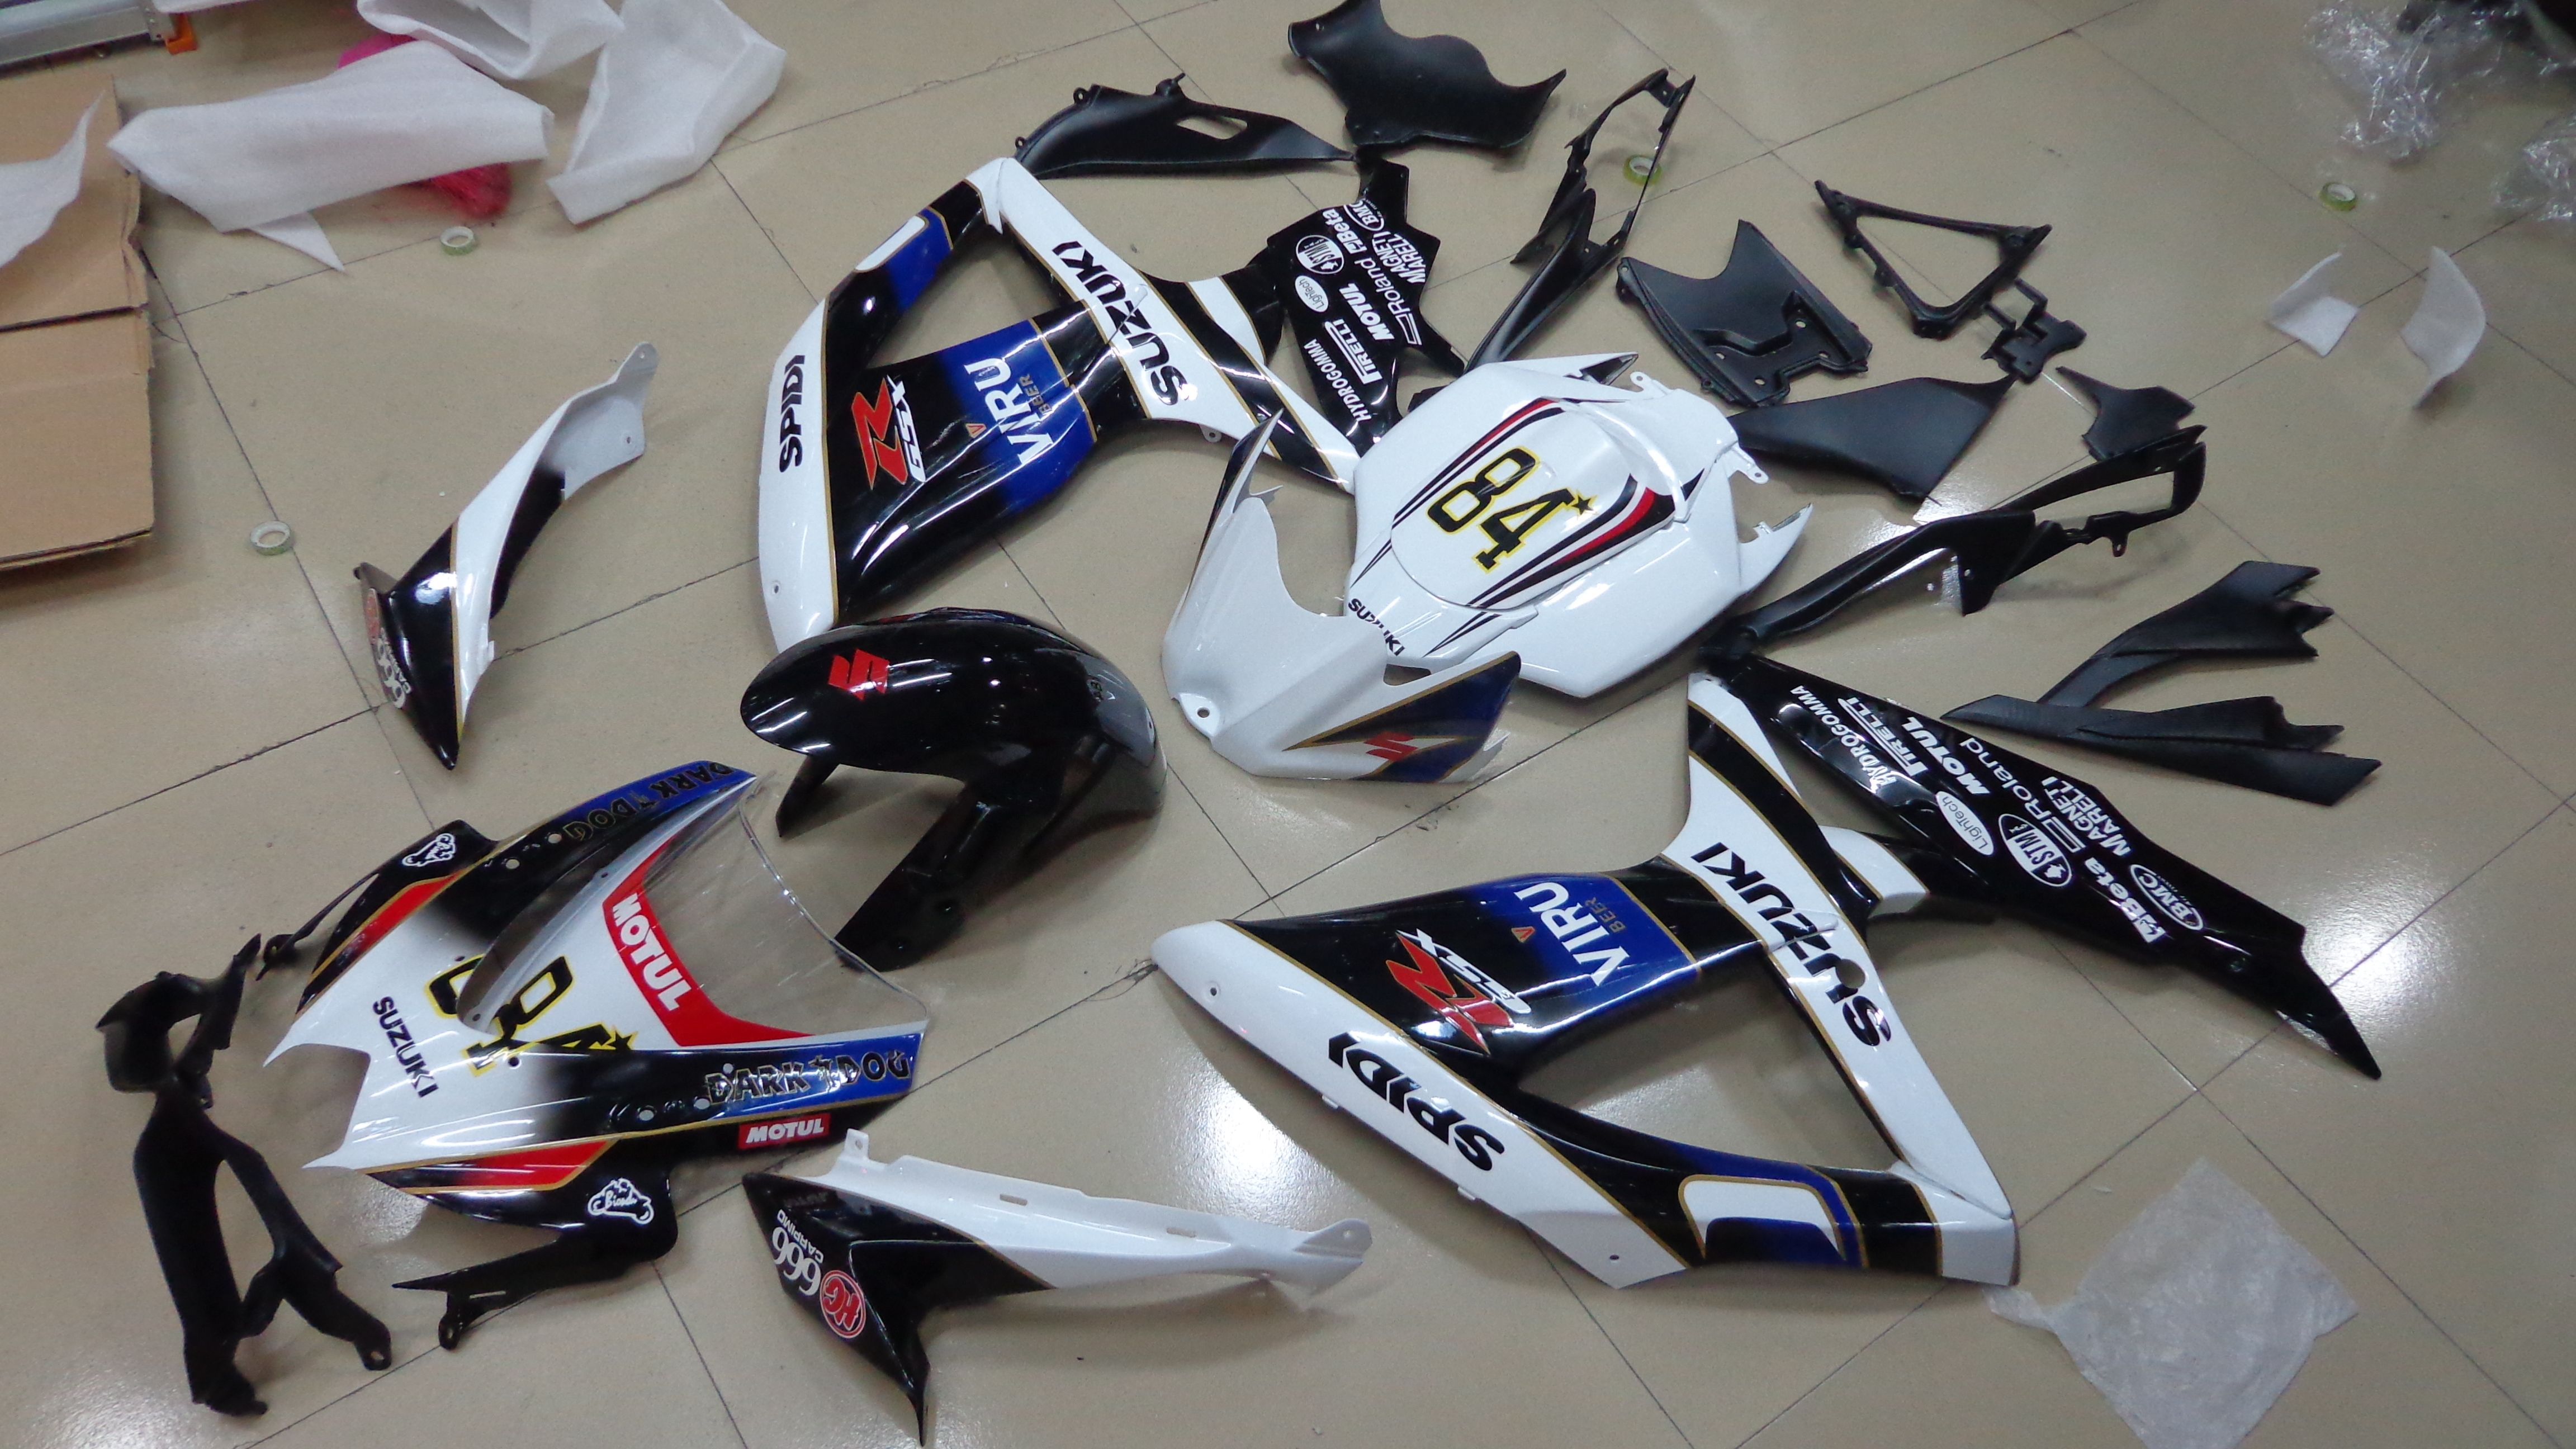 Gsxr 600 750 2008 2010 k8 fairings could get from http